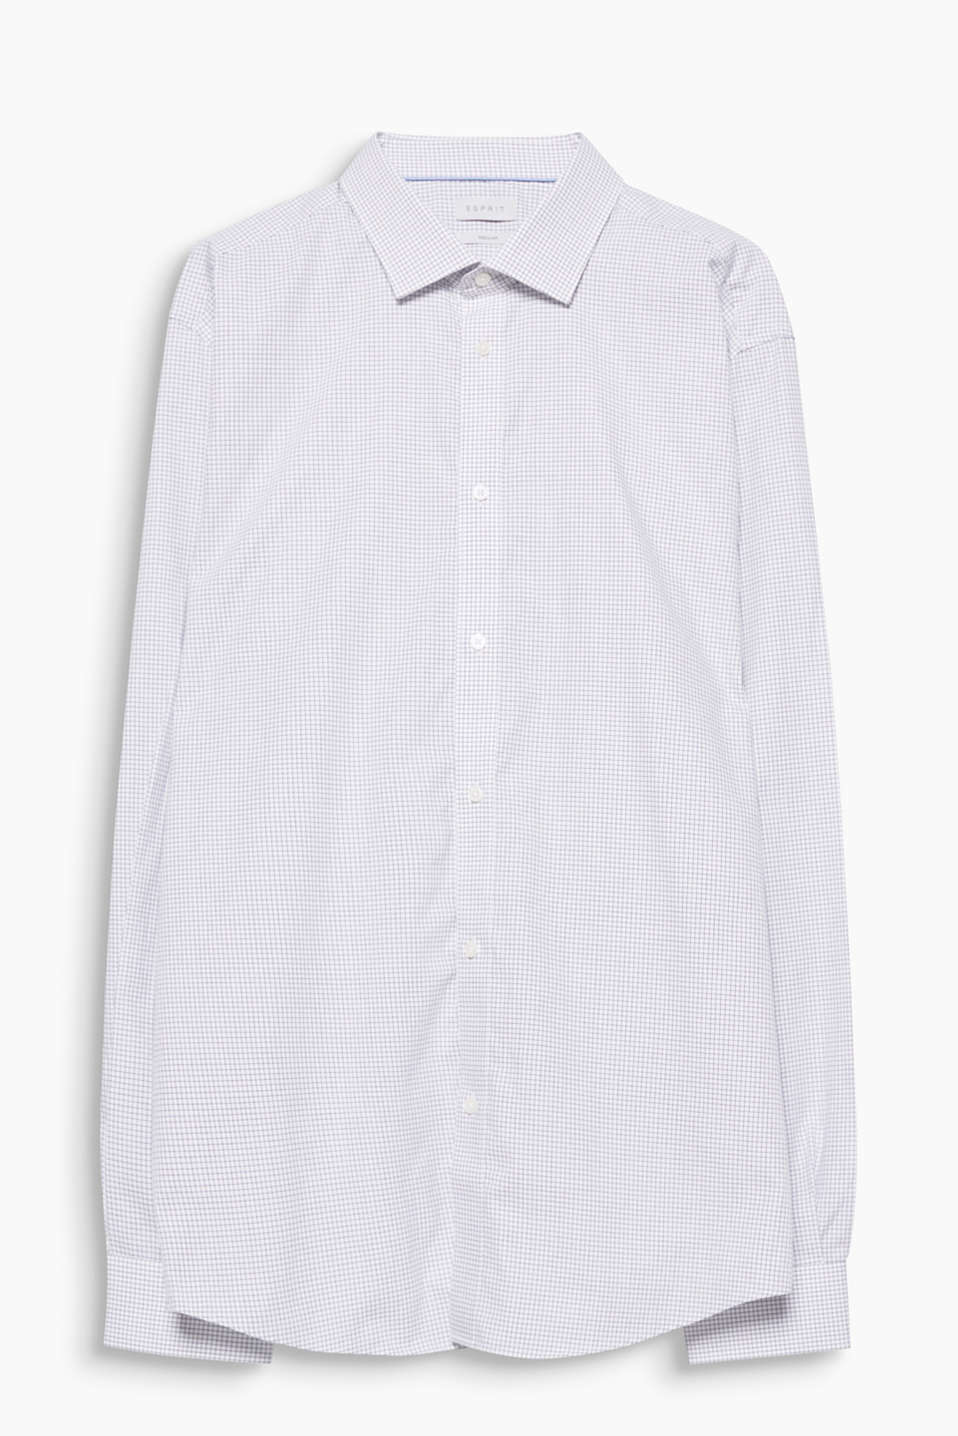 100% cotton shirt with a Kent collar and lattice pattern